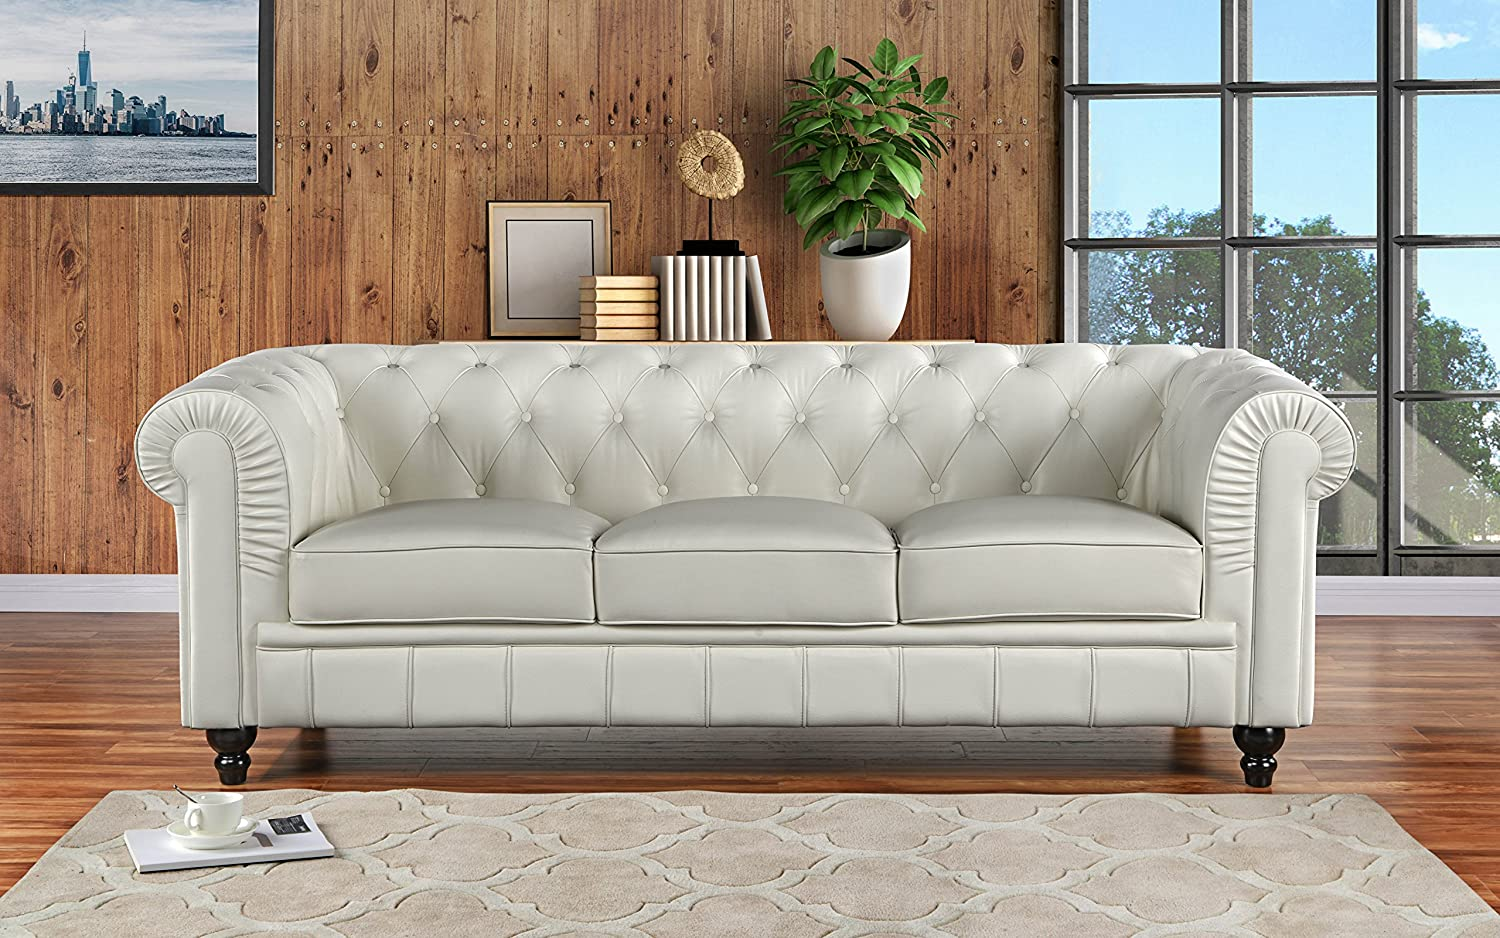 amazon com divano roma furniture classic scroll arm leather match rh amazon com white chesterfield sofa living room white chesterfield sofa leather